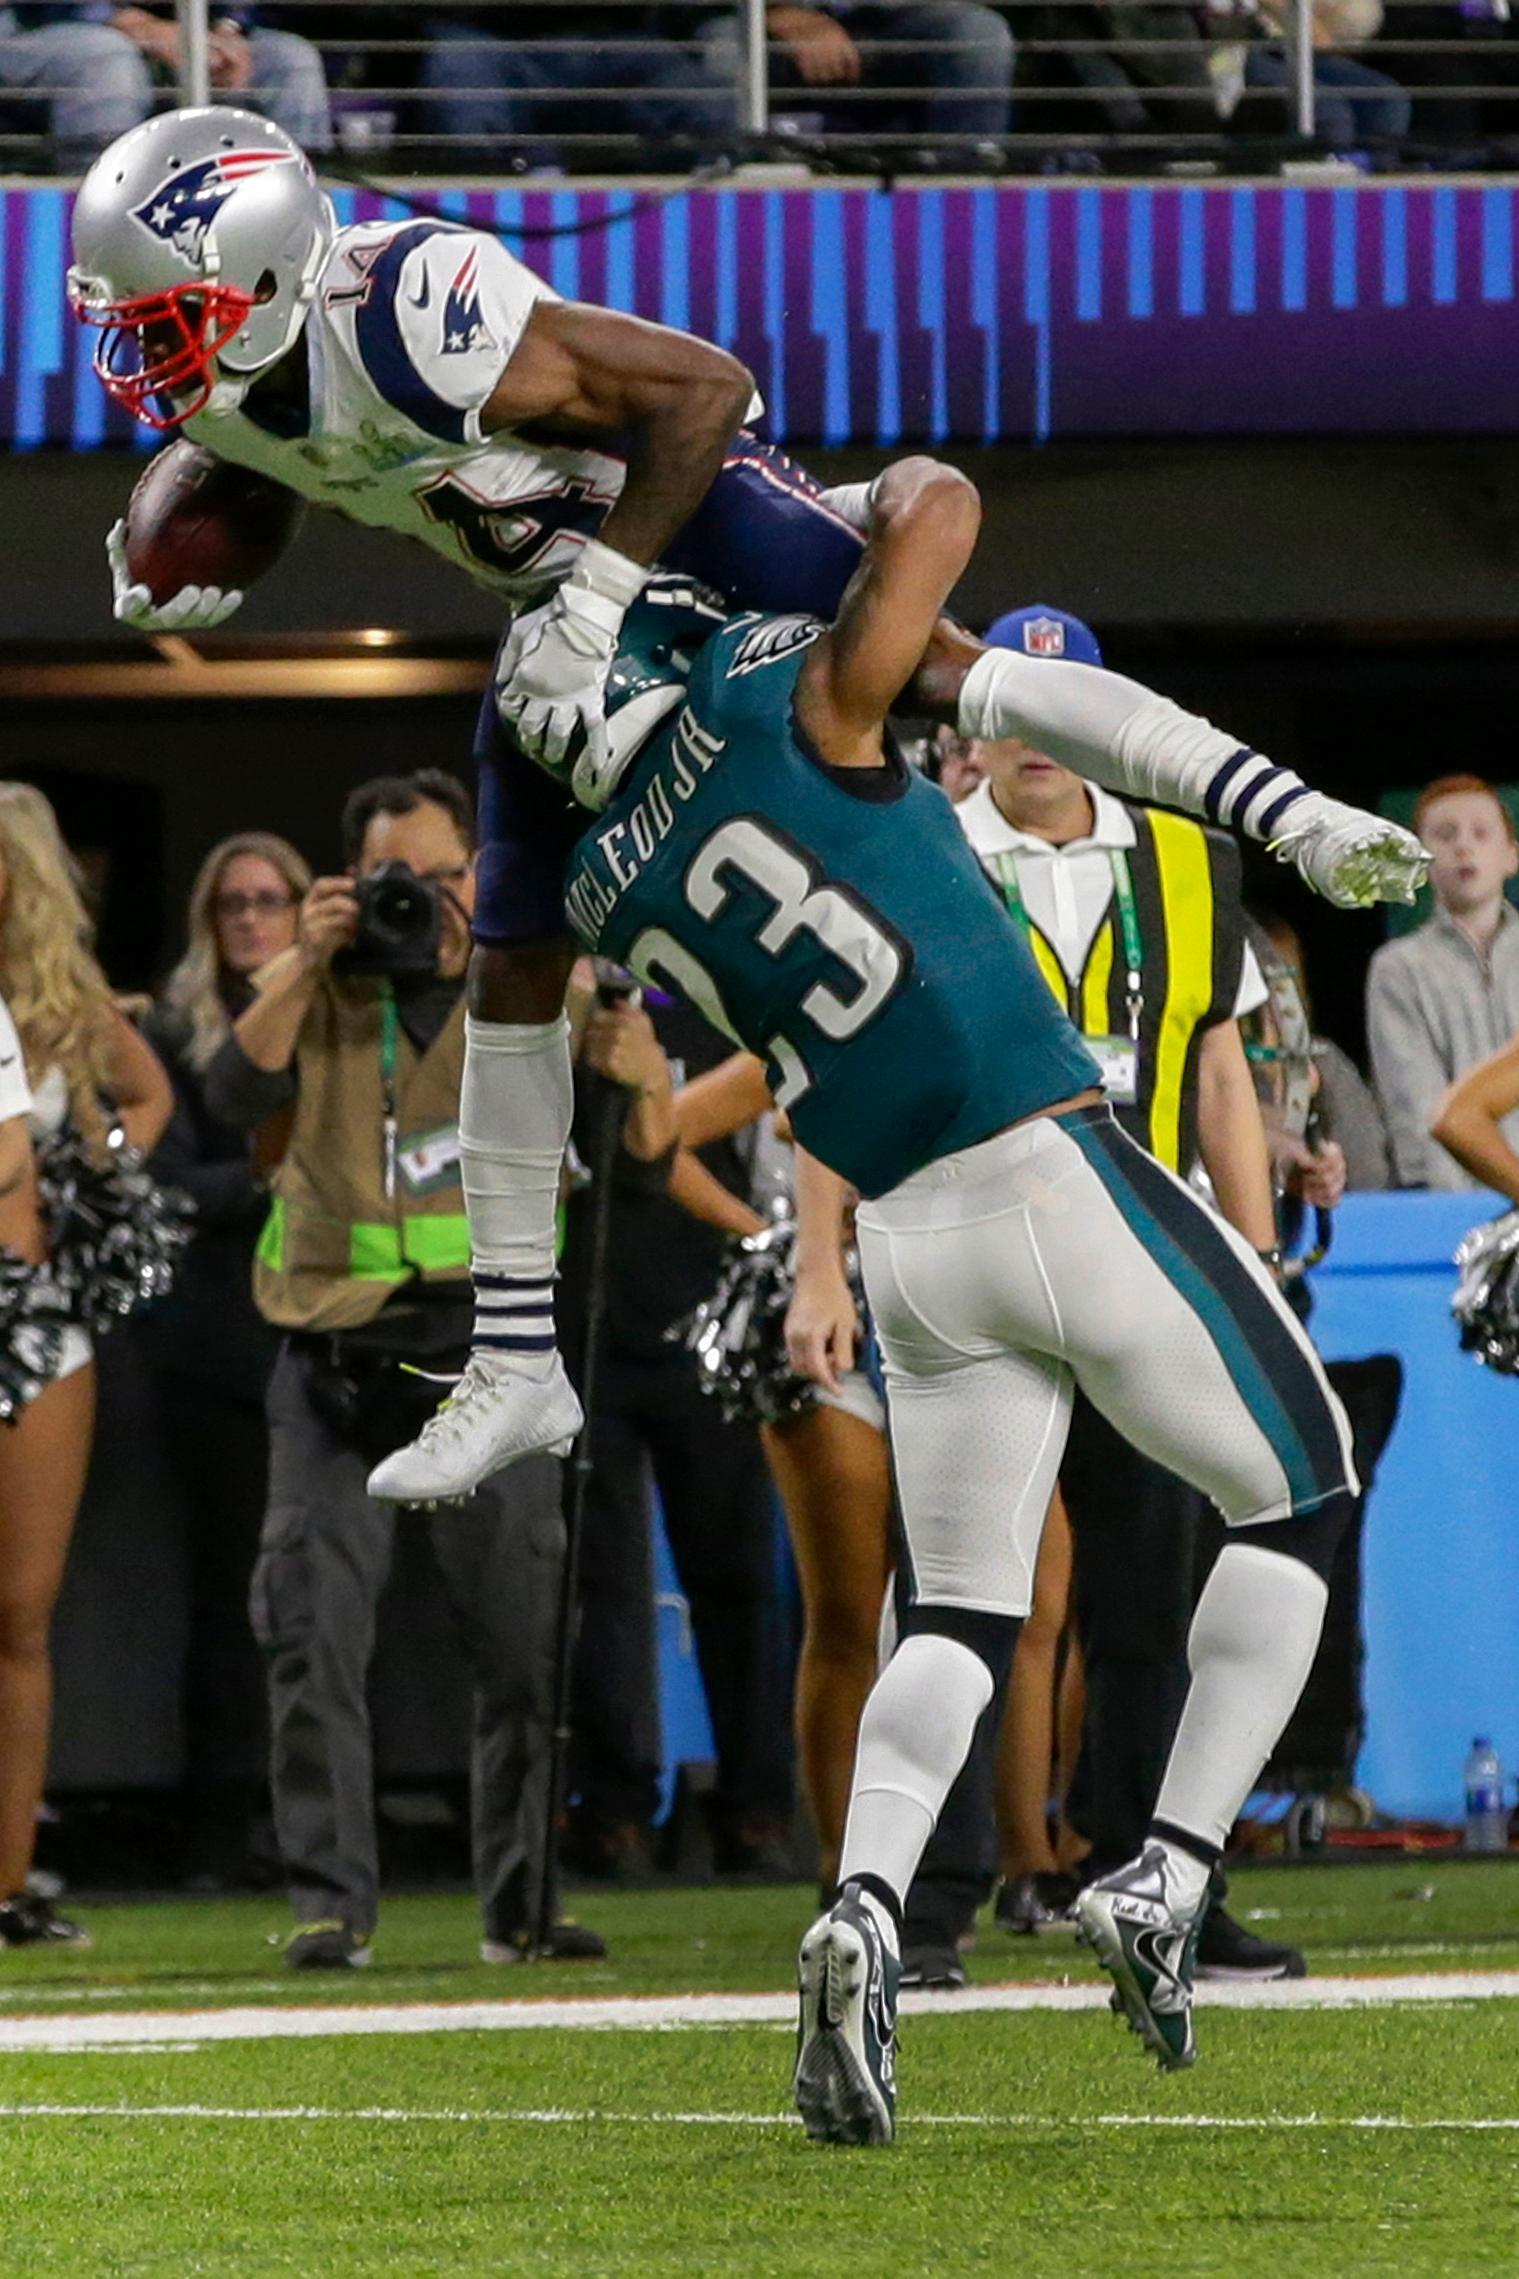 New England Patriots wide receiver Brandin Cooks (14), leaps over Philadelphia Eagles free safety Rodney McLeod (23), during the first half of the NFL Super Bowl 52 football game, Sunday, Feb. 4, 2018, in Minneapolis. (AP Photo/Frank Franklin II)